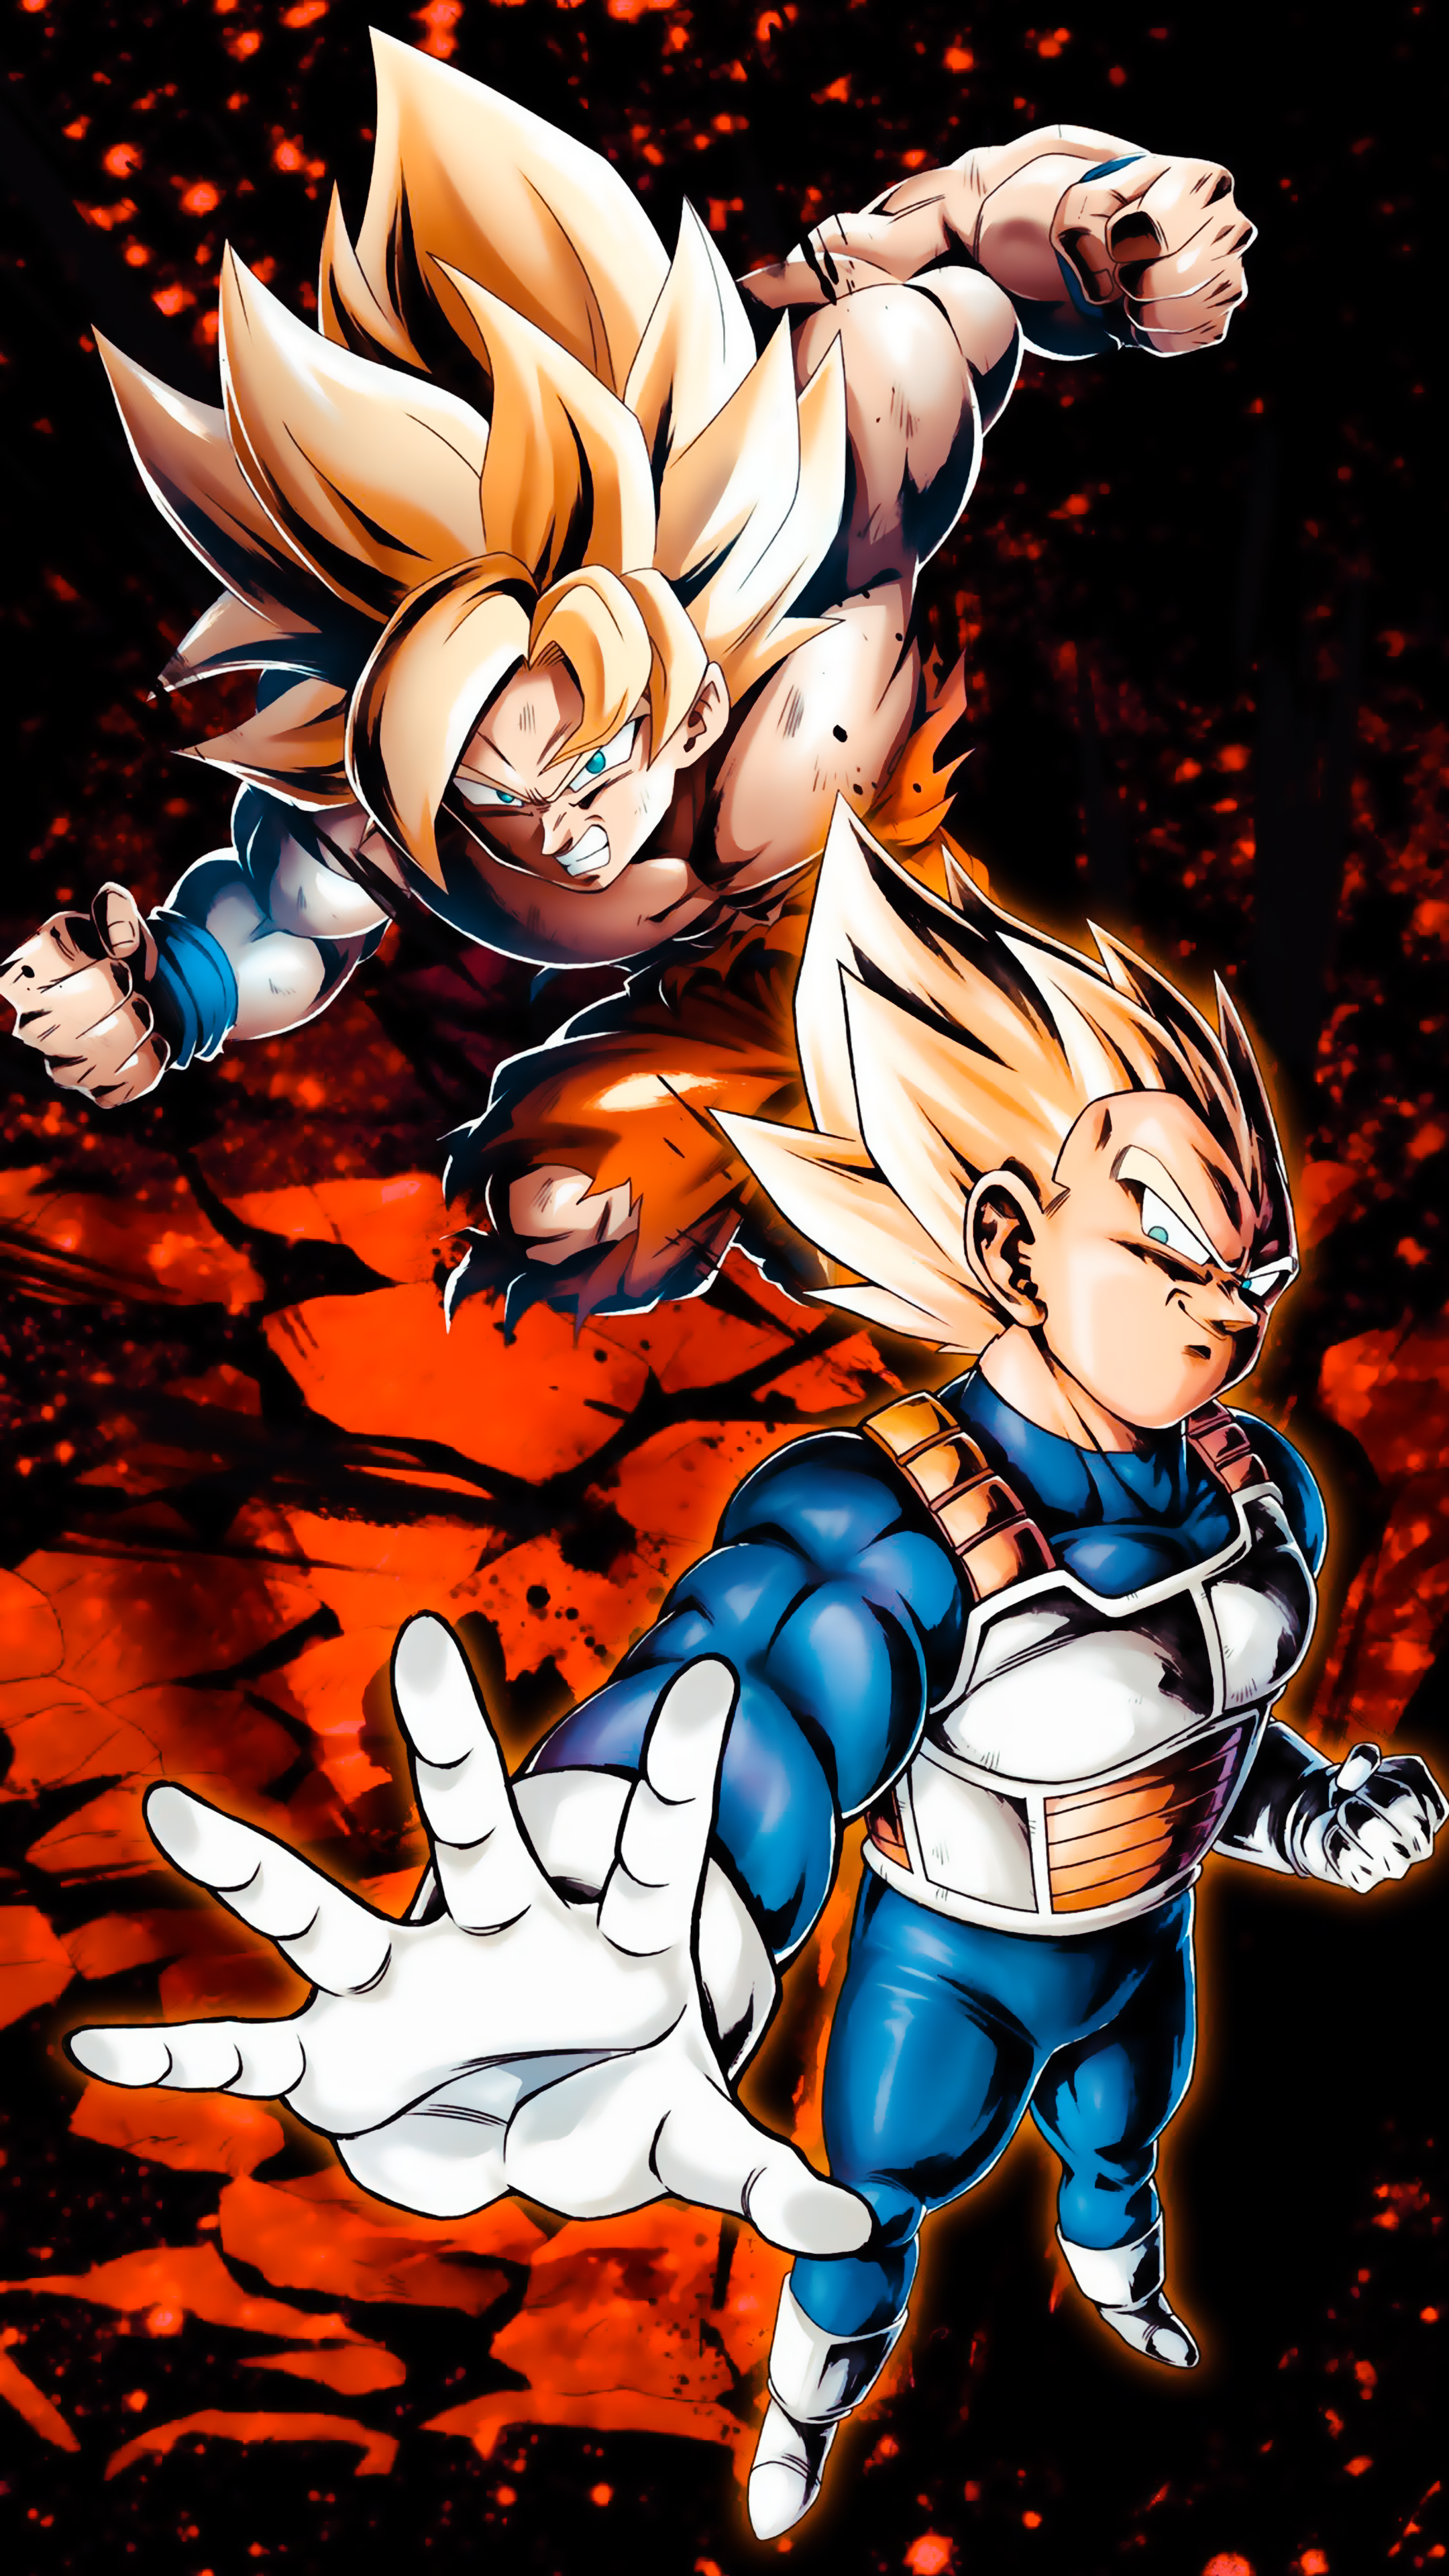 Goku Y Vegeta Wallpaper 4k 2160x3840 Download Hd Wallpaper Wallpapertip